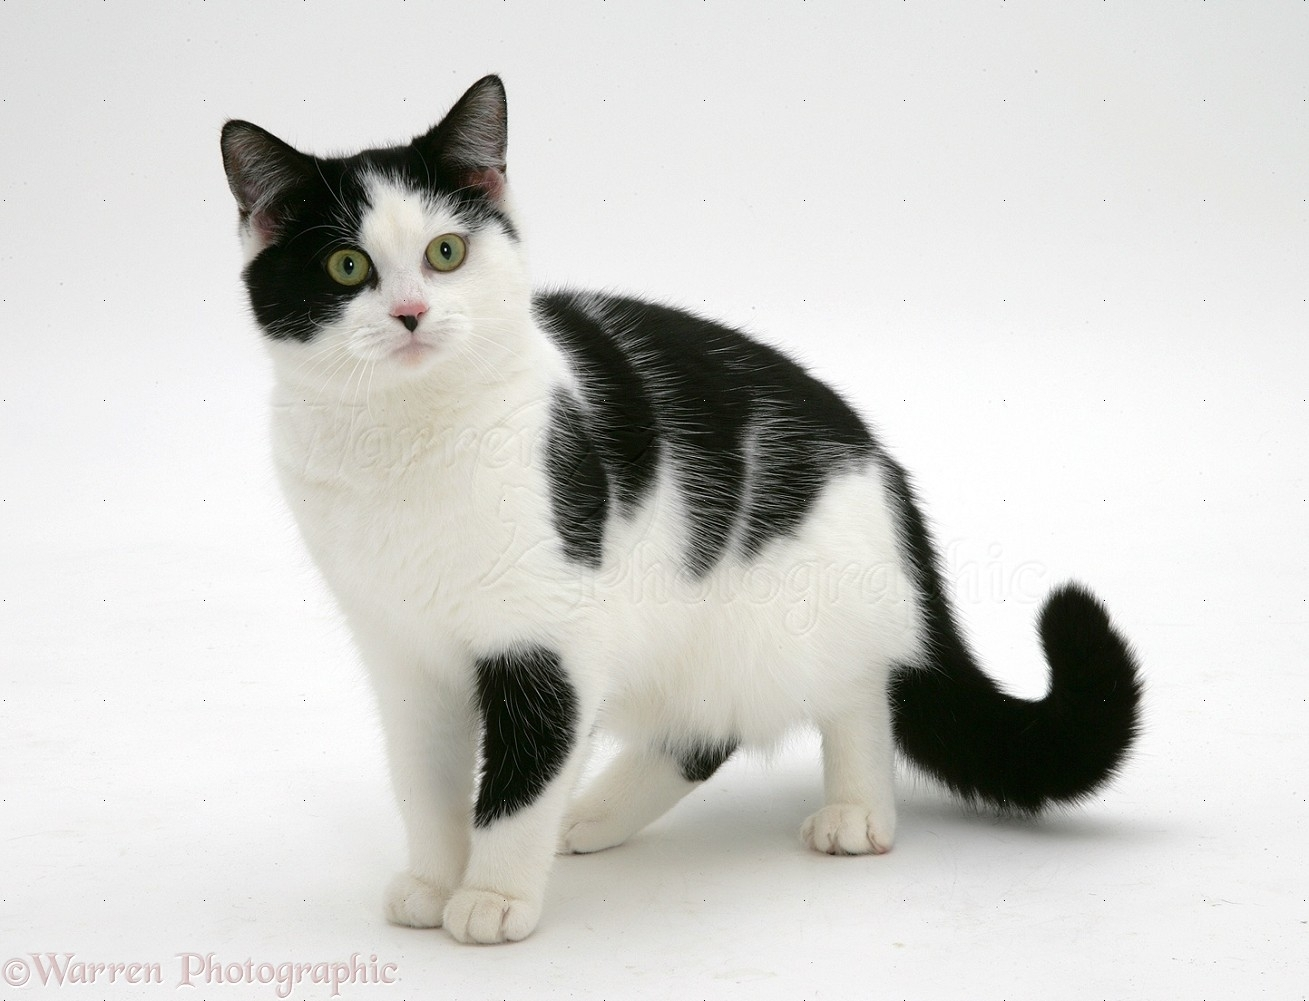 black-and-white cat photo wp26256